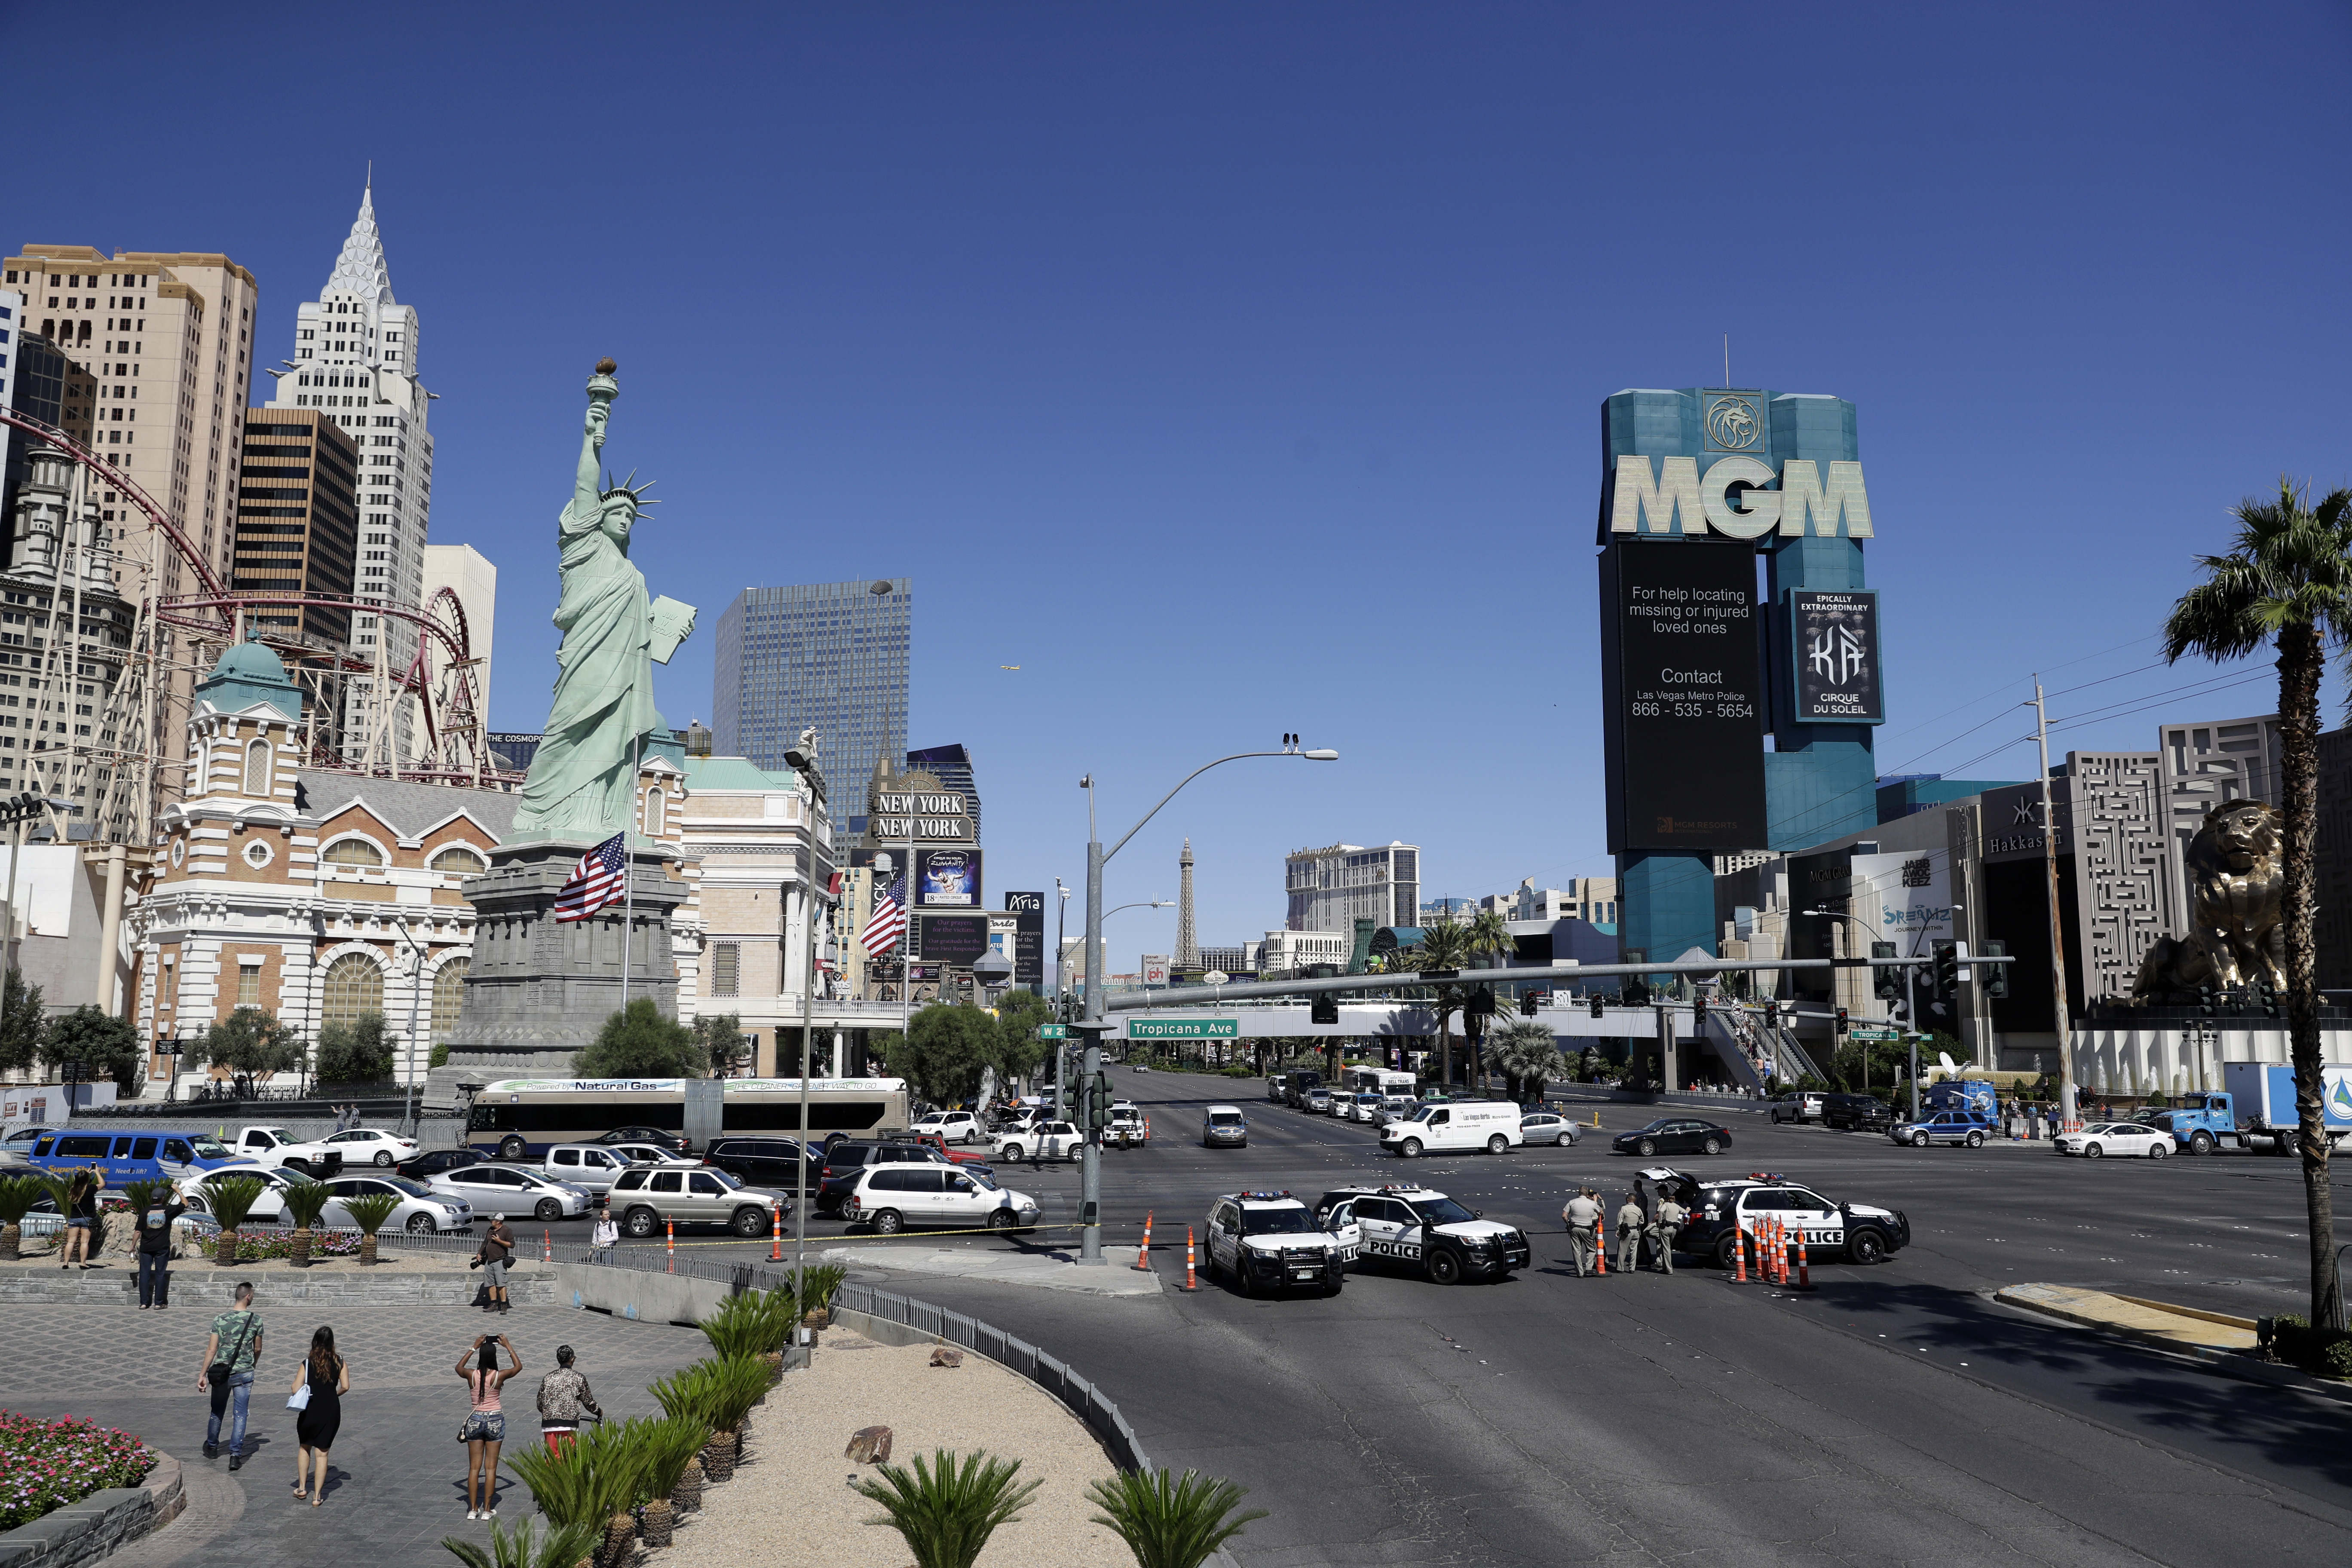 Las Vegas hotels subject guests to luggage screening after massacre ...